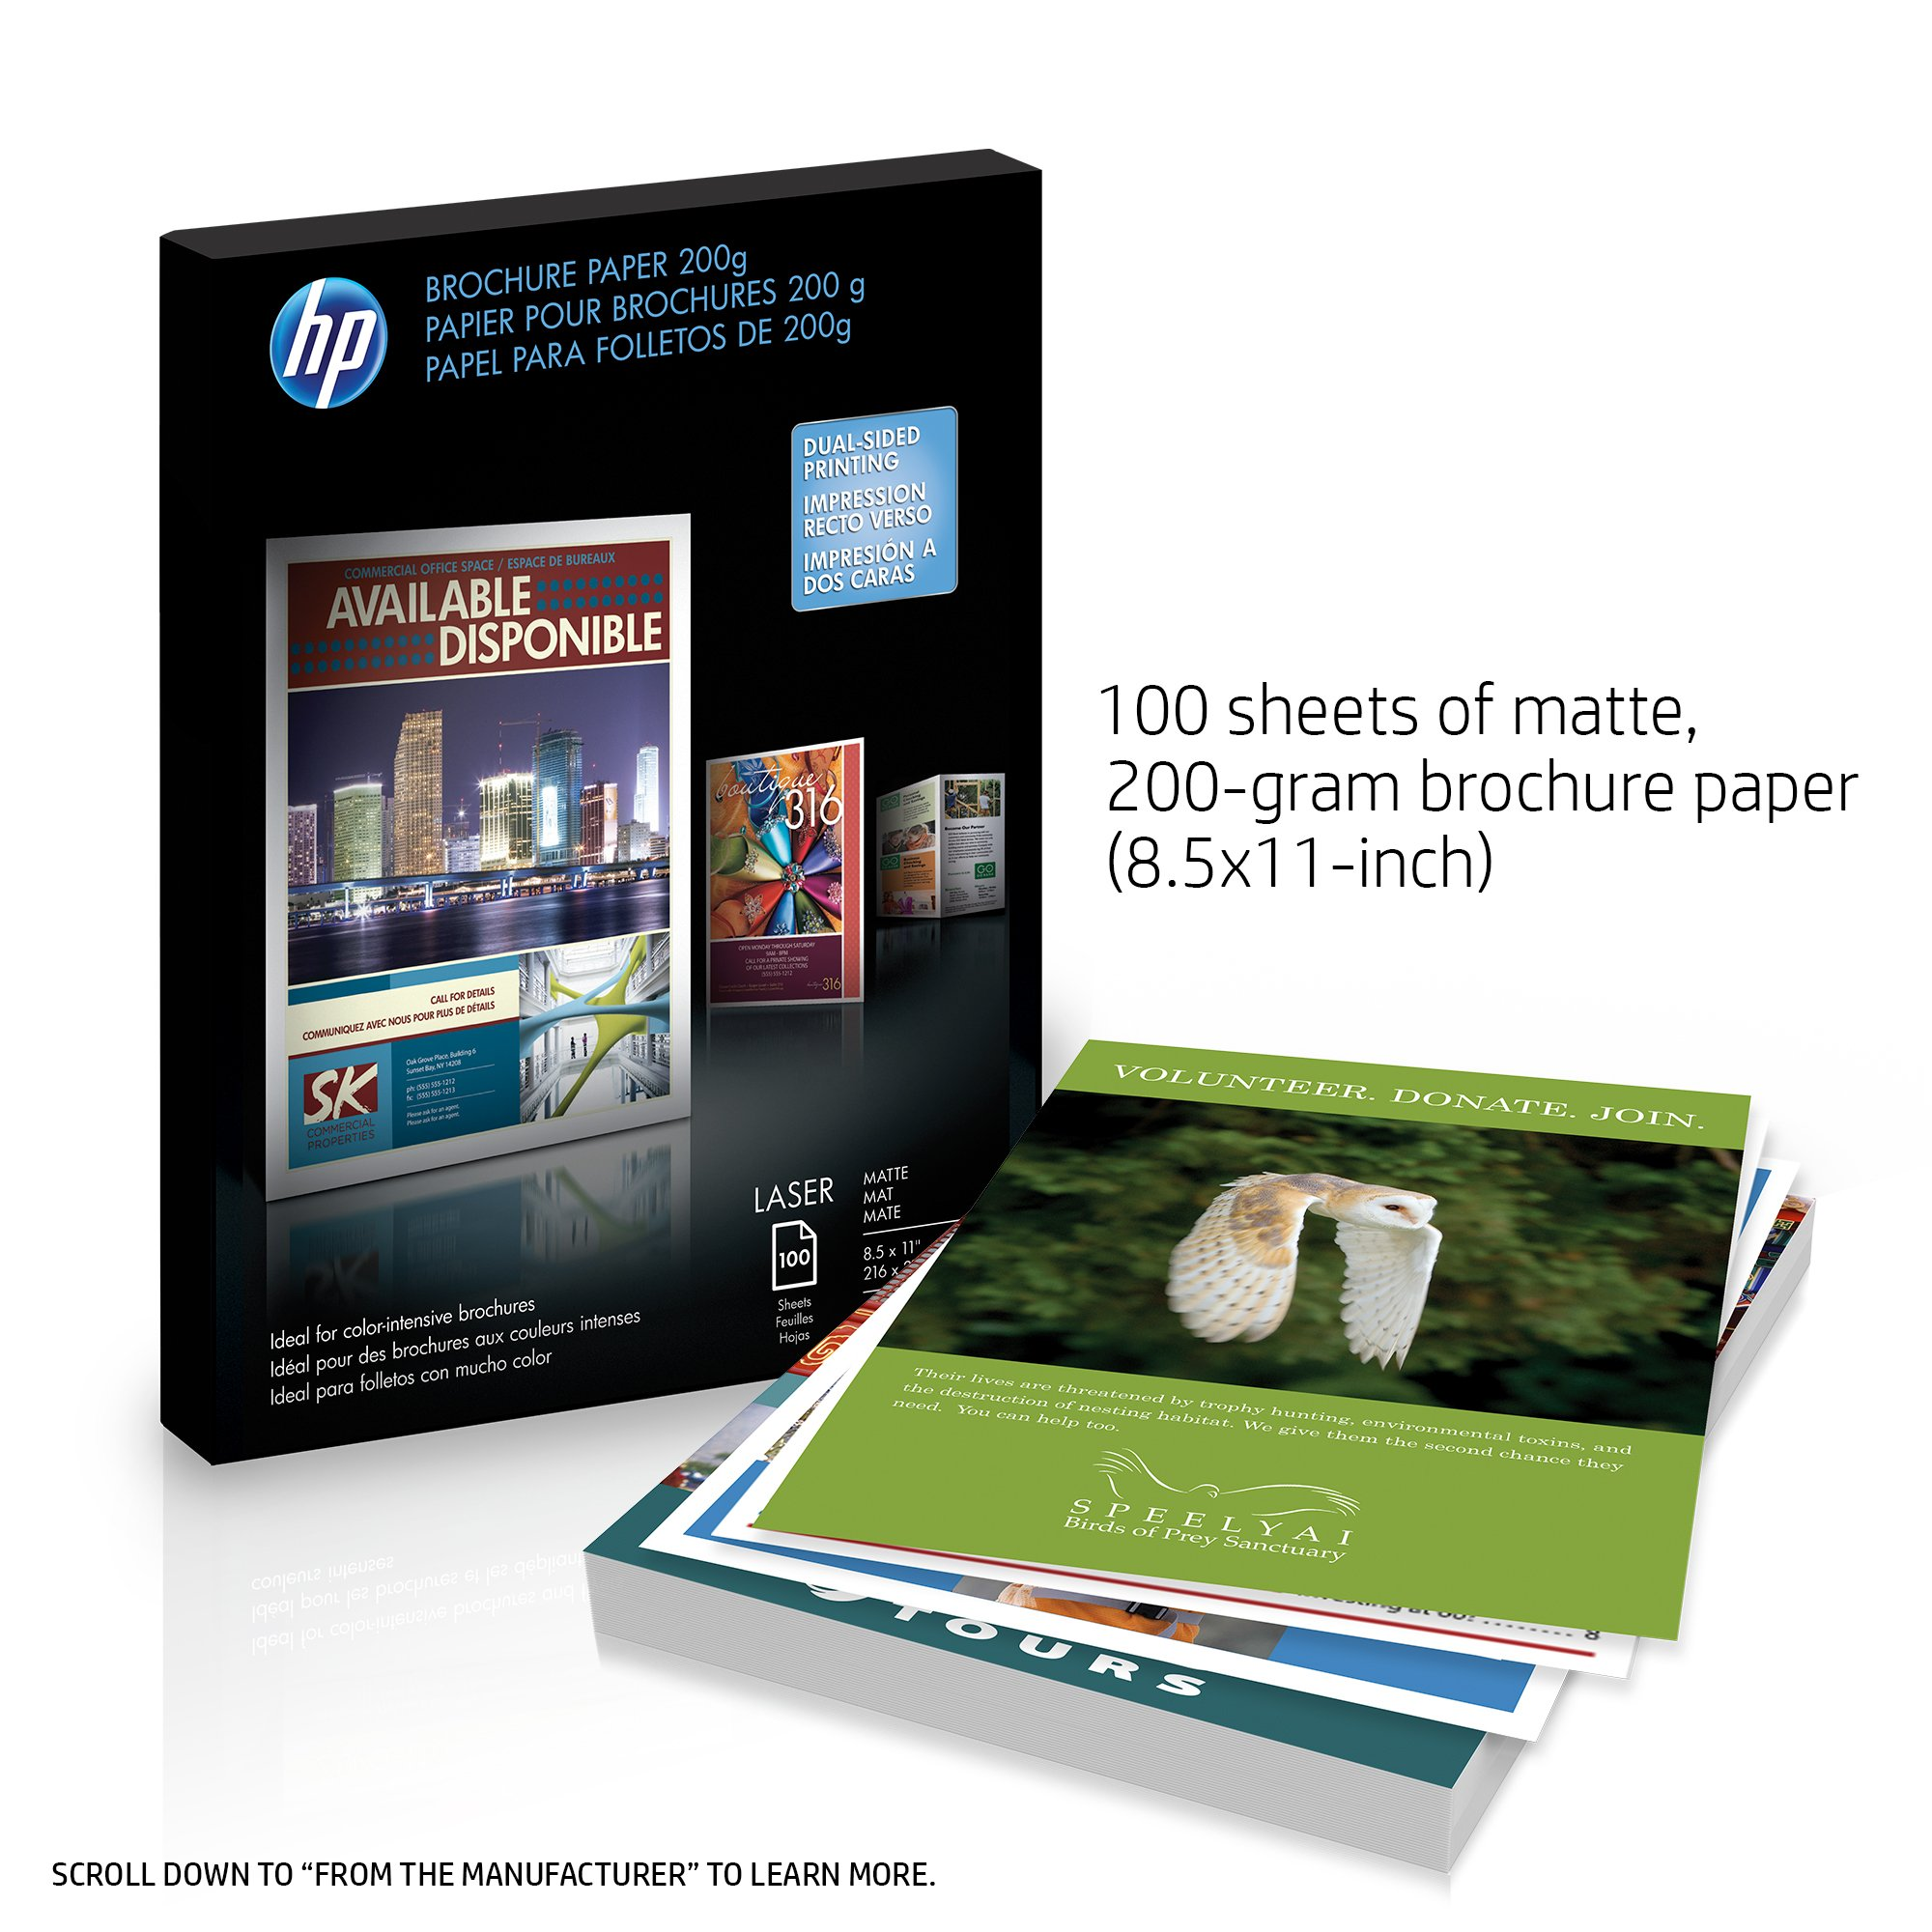 HP Q8824A Brochure Paper for Laser Printer, Matte, 8.5x11, 100 Sheets by HP (Image #2)